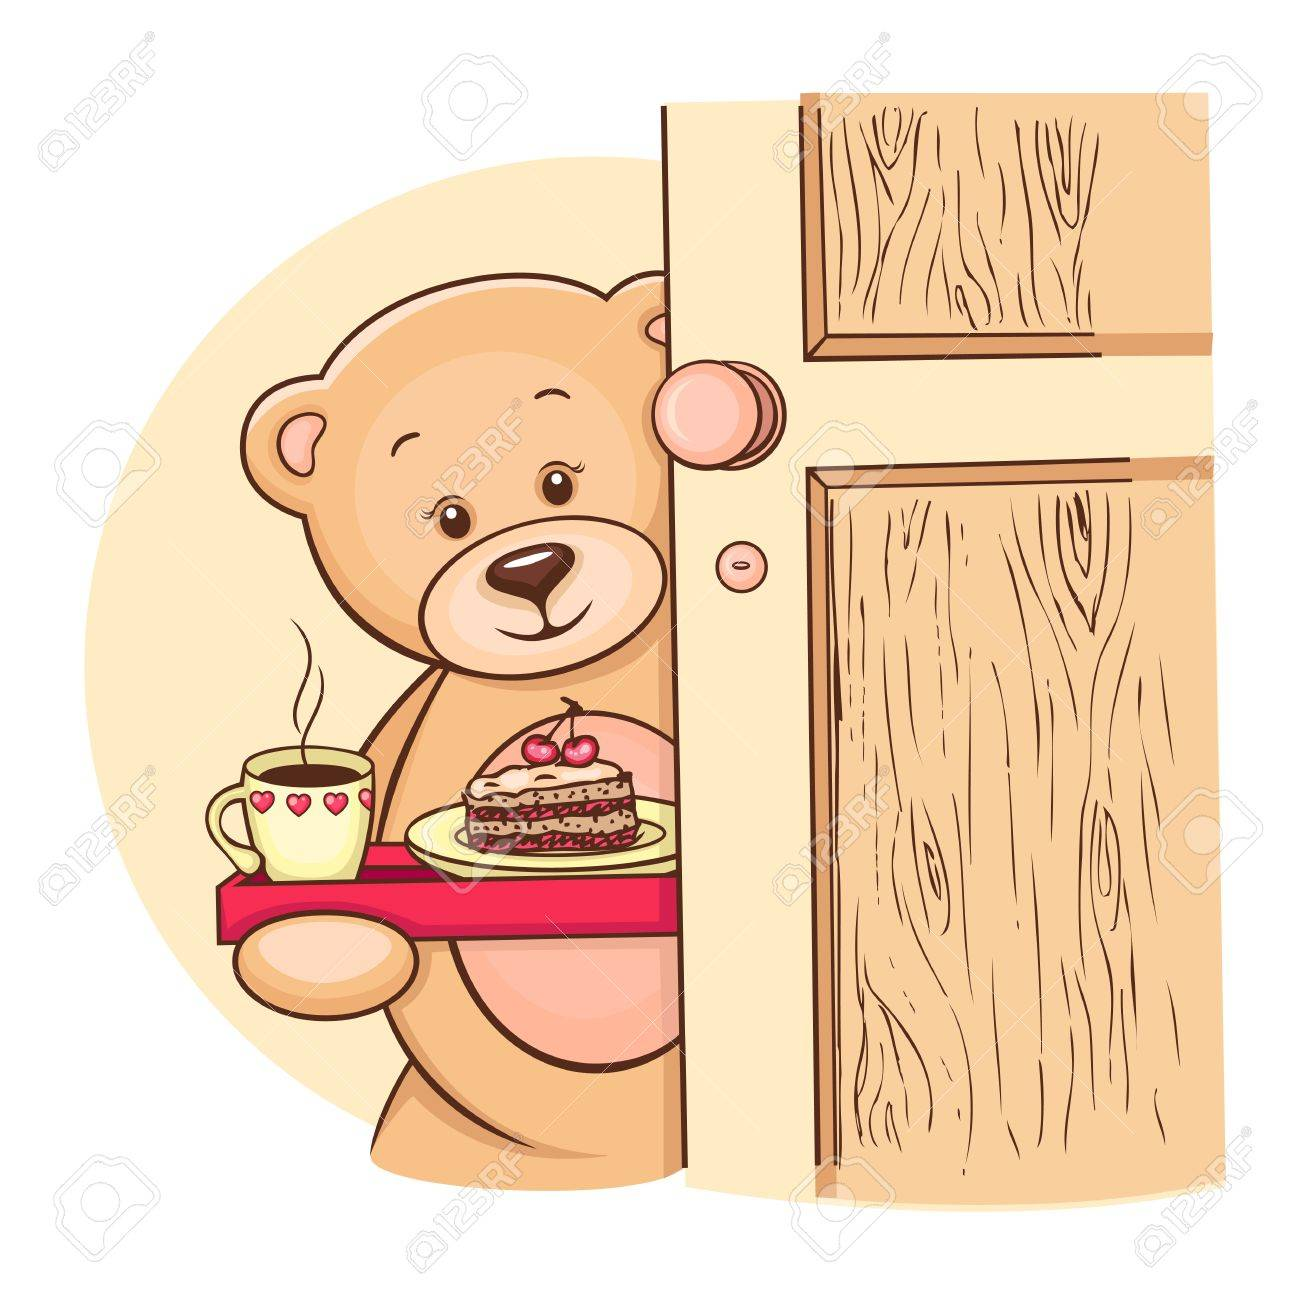 Hand drawn Teddy Bear holding tray with breakfast, vector illustration for your design Stock Photo - 13057881